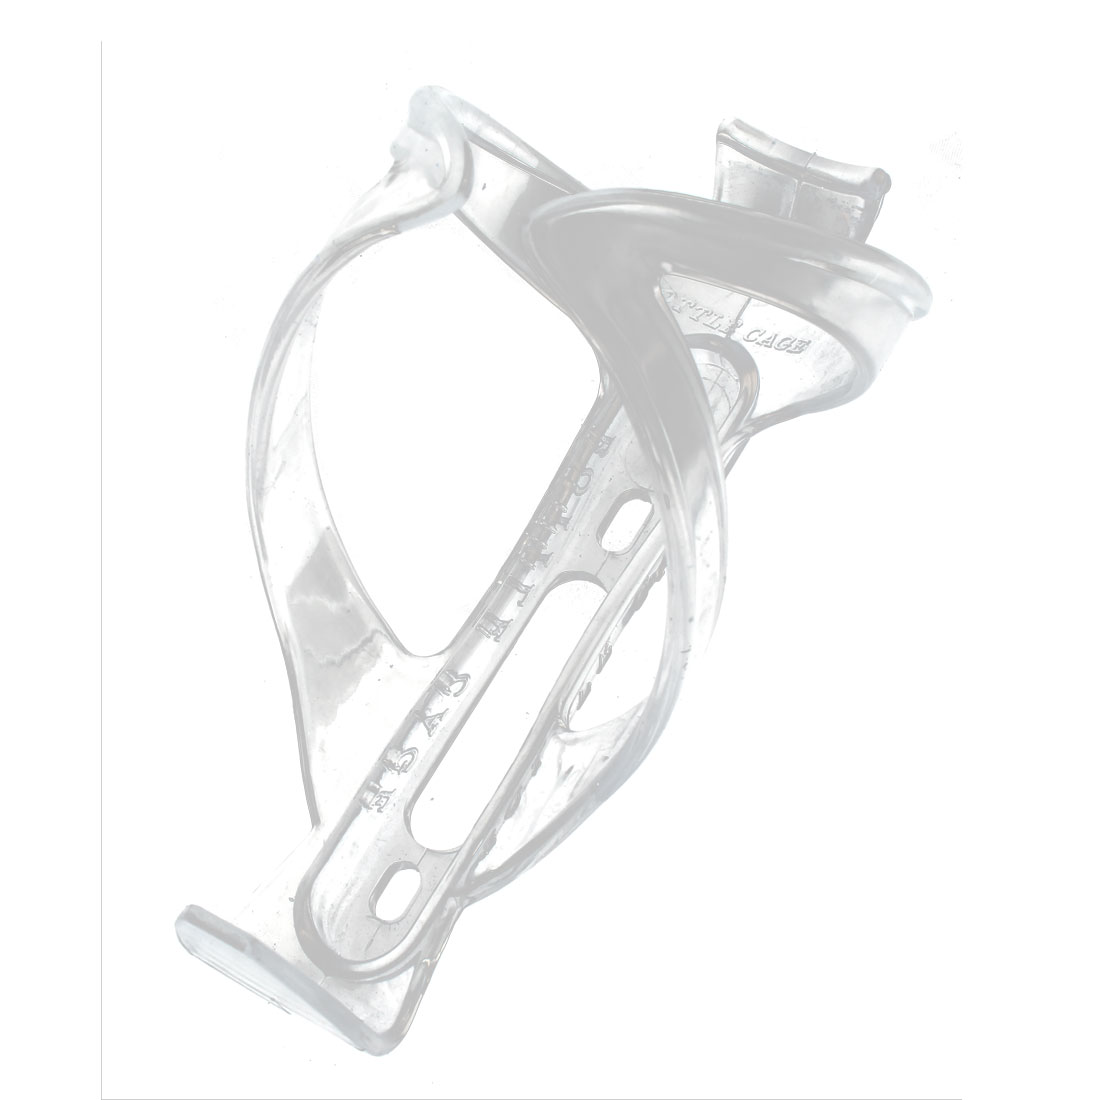 Cycling Bicycle Bike Plastic Drinking Water Bottle Holder Cage Bracket Clear